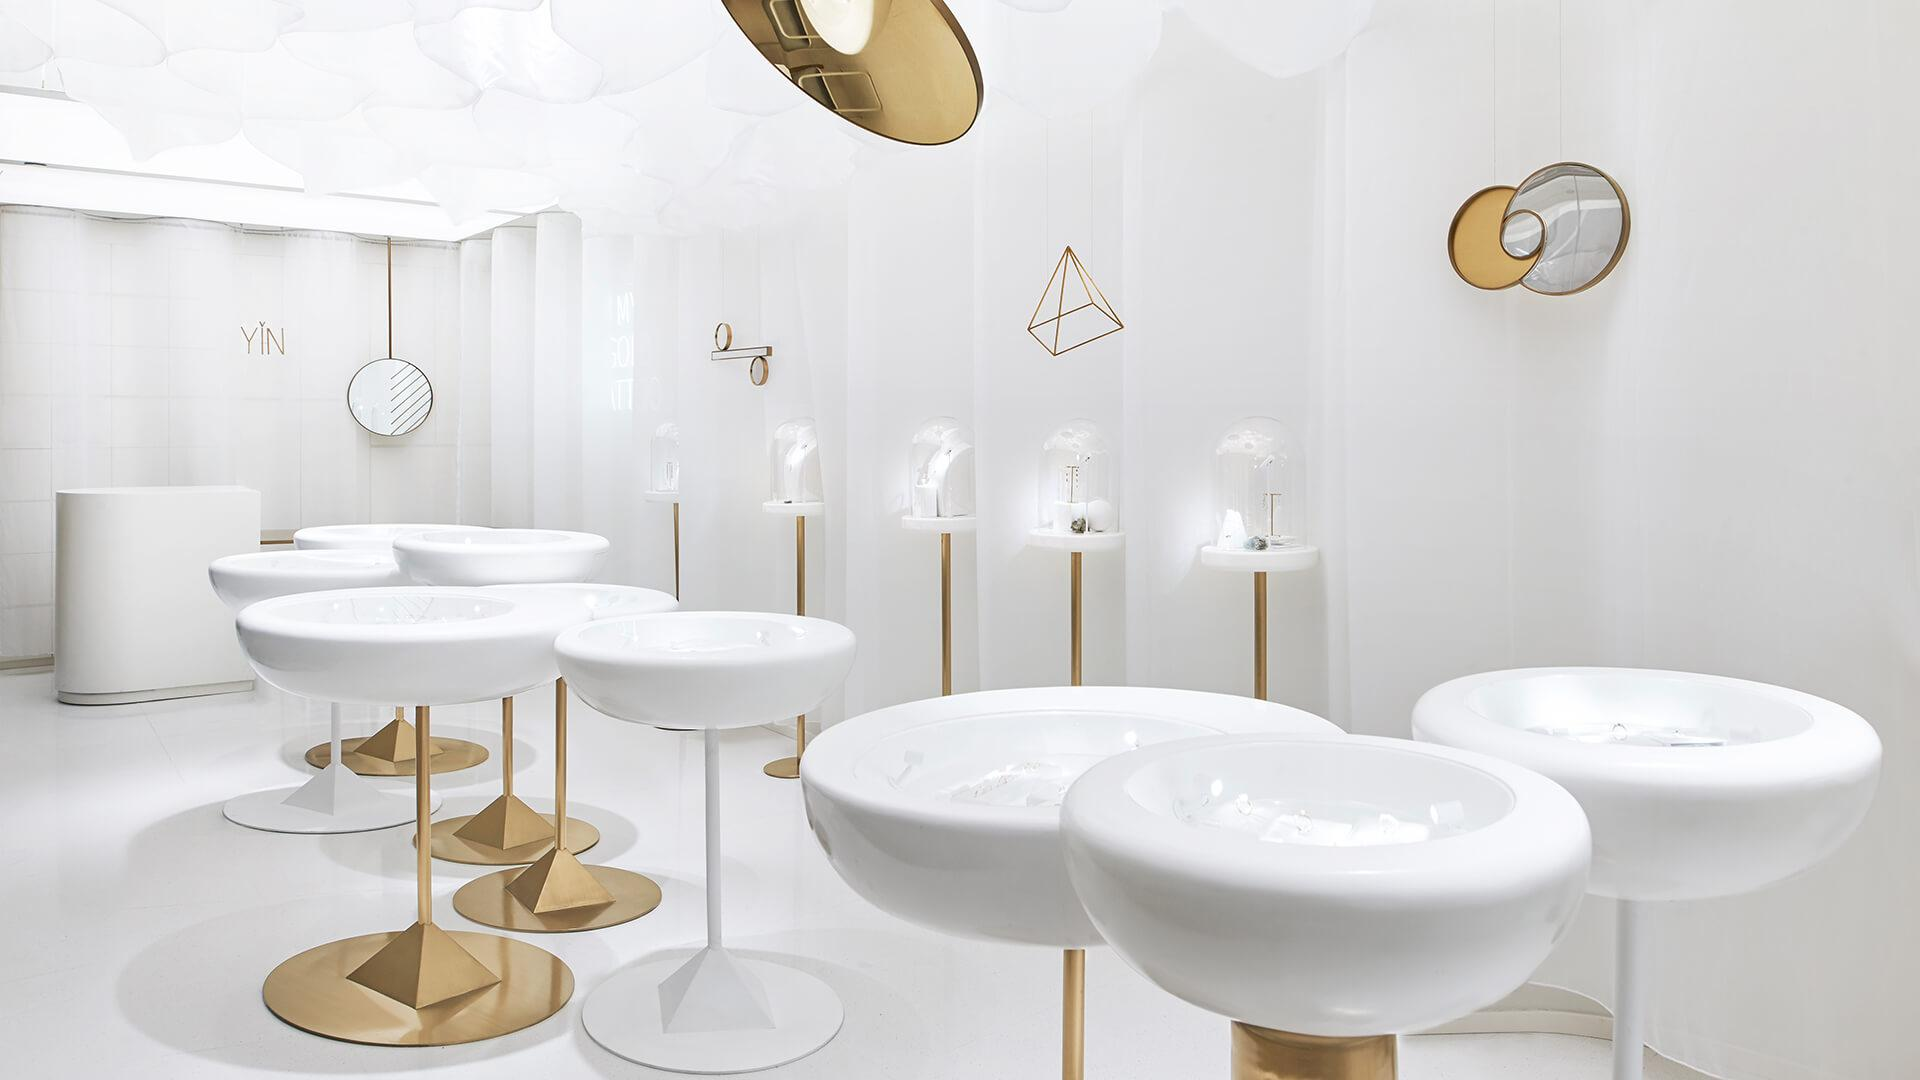 Frame Small Retail Spaces Shouldn T Limit Creativity Shows This Beijing Jewellery Store